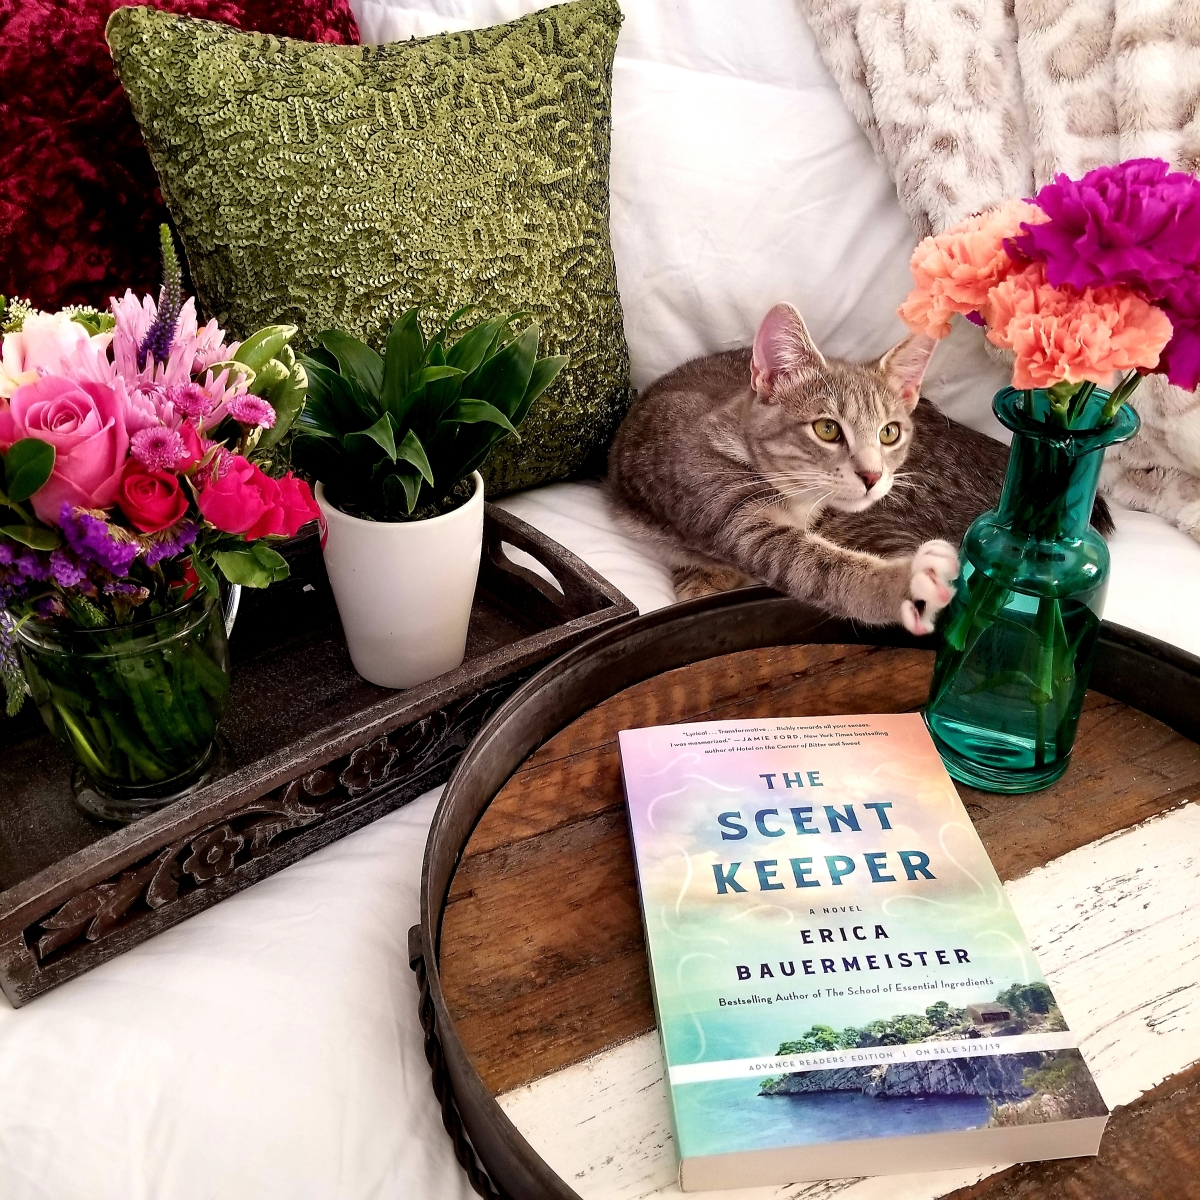 The Scent Keeper by Erica Bauermeister #bookreview #tarheelreader #thrscentkeeper #ericabauermeister @stmartinspress #thescentkeeper #blogtour